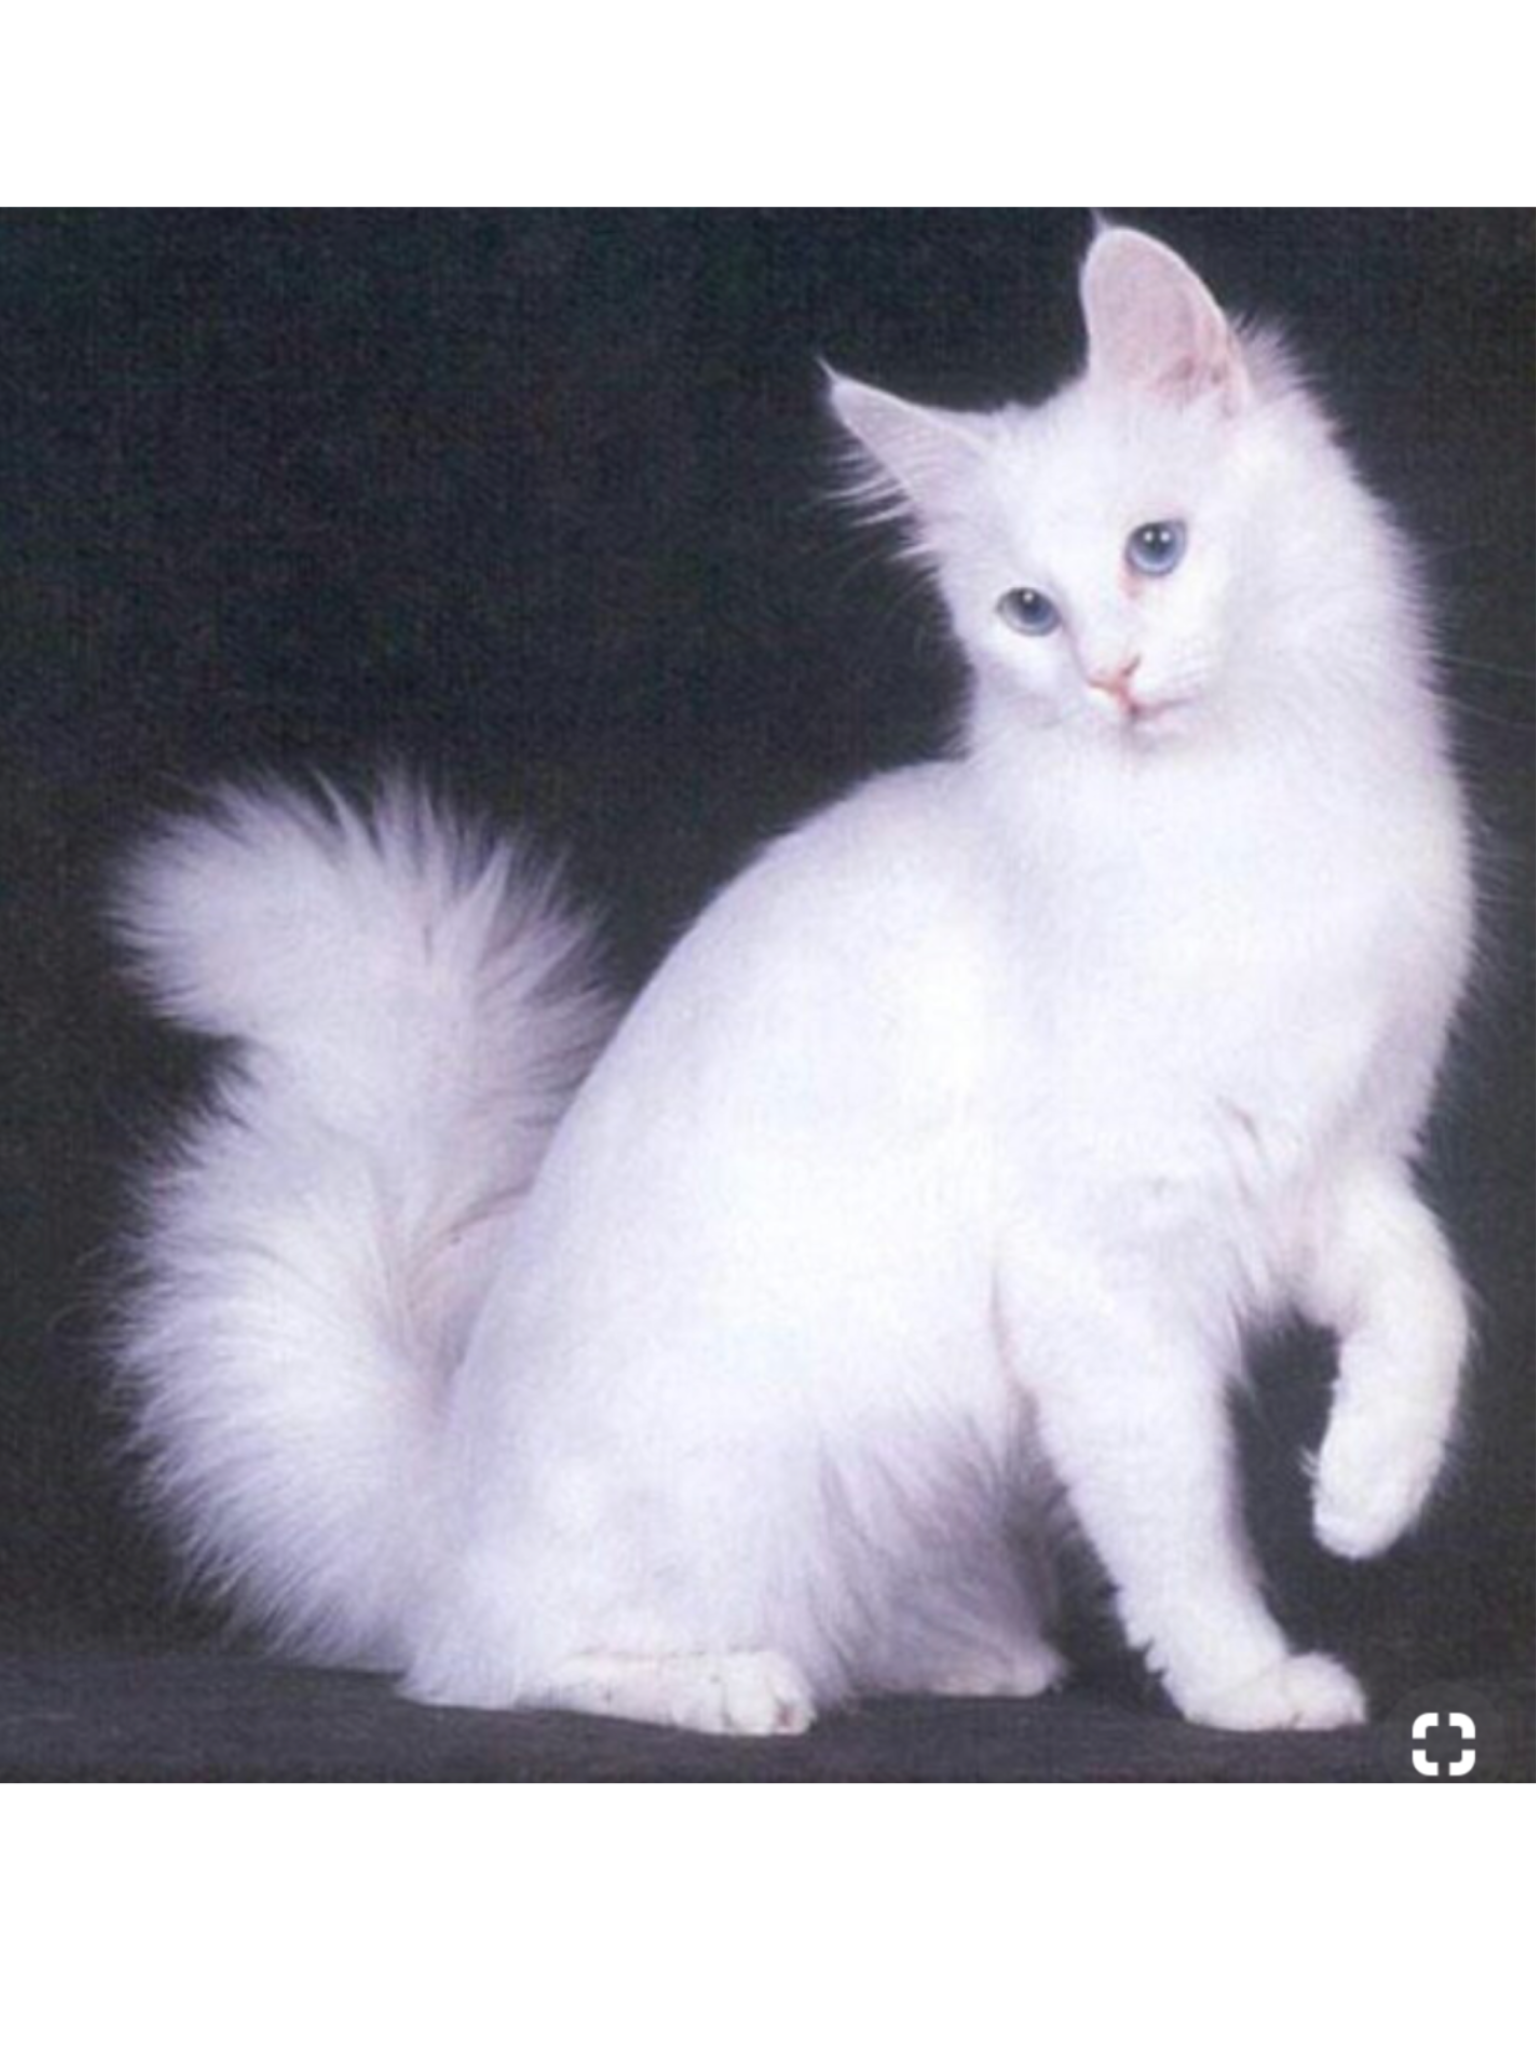 Pin By Leena Sinervo On Adorable Kittens And Cats Turkish Angora Cat Angora Cats White Cats